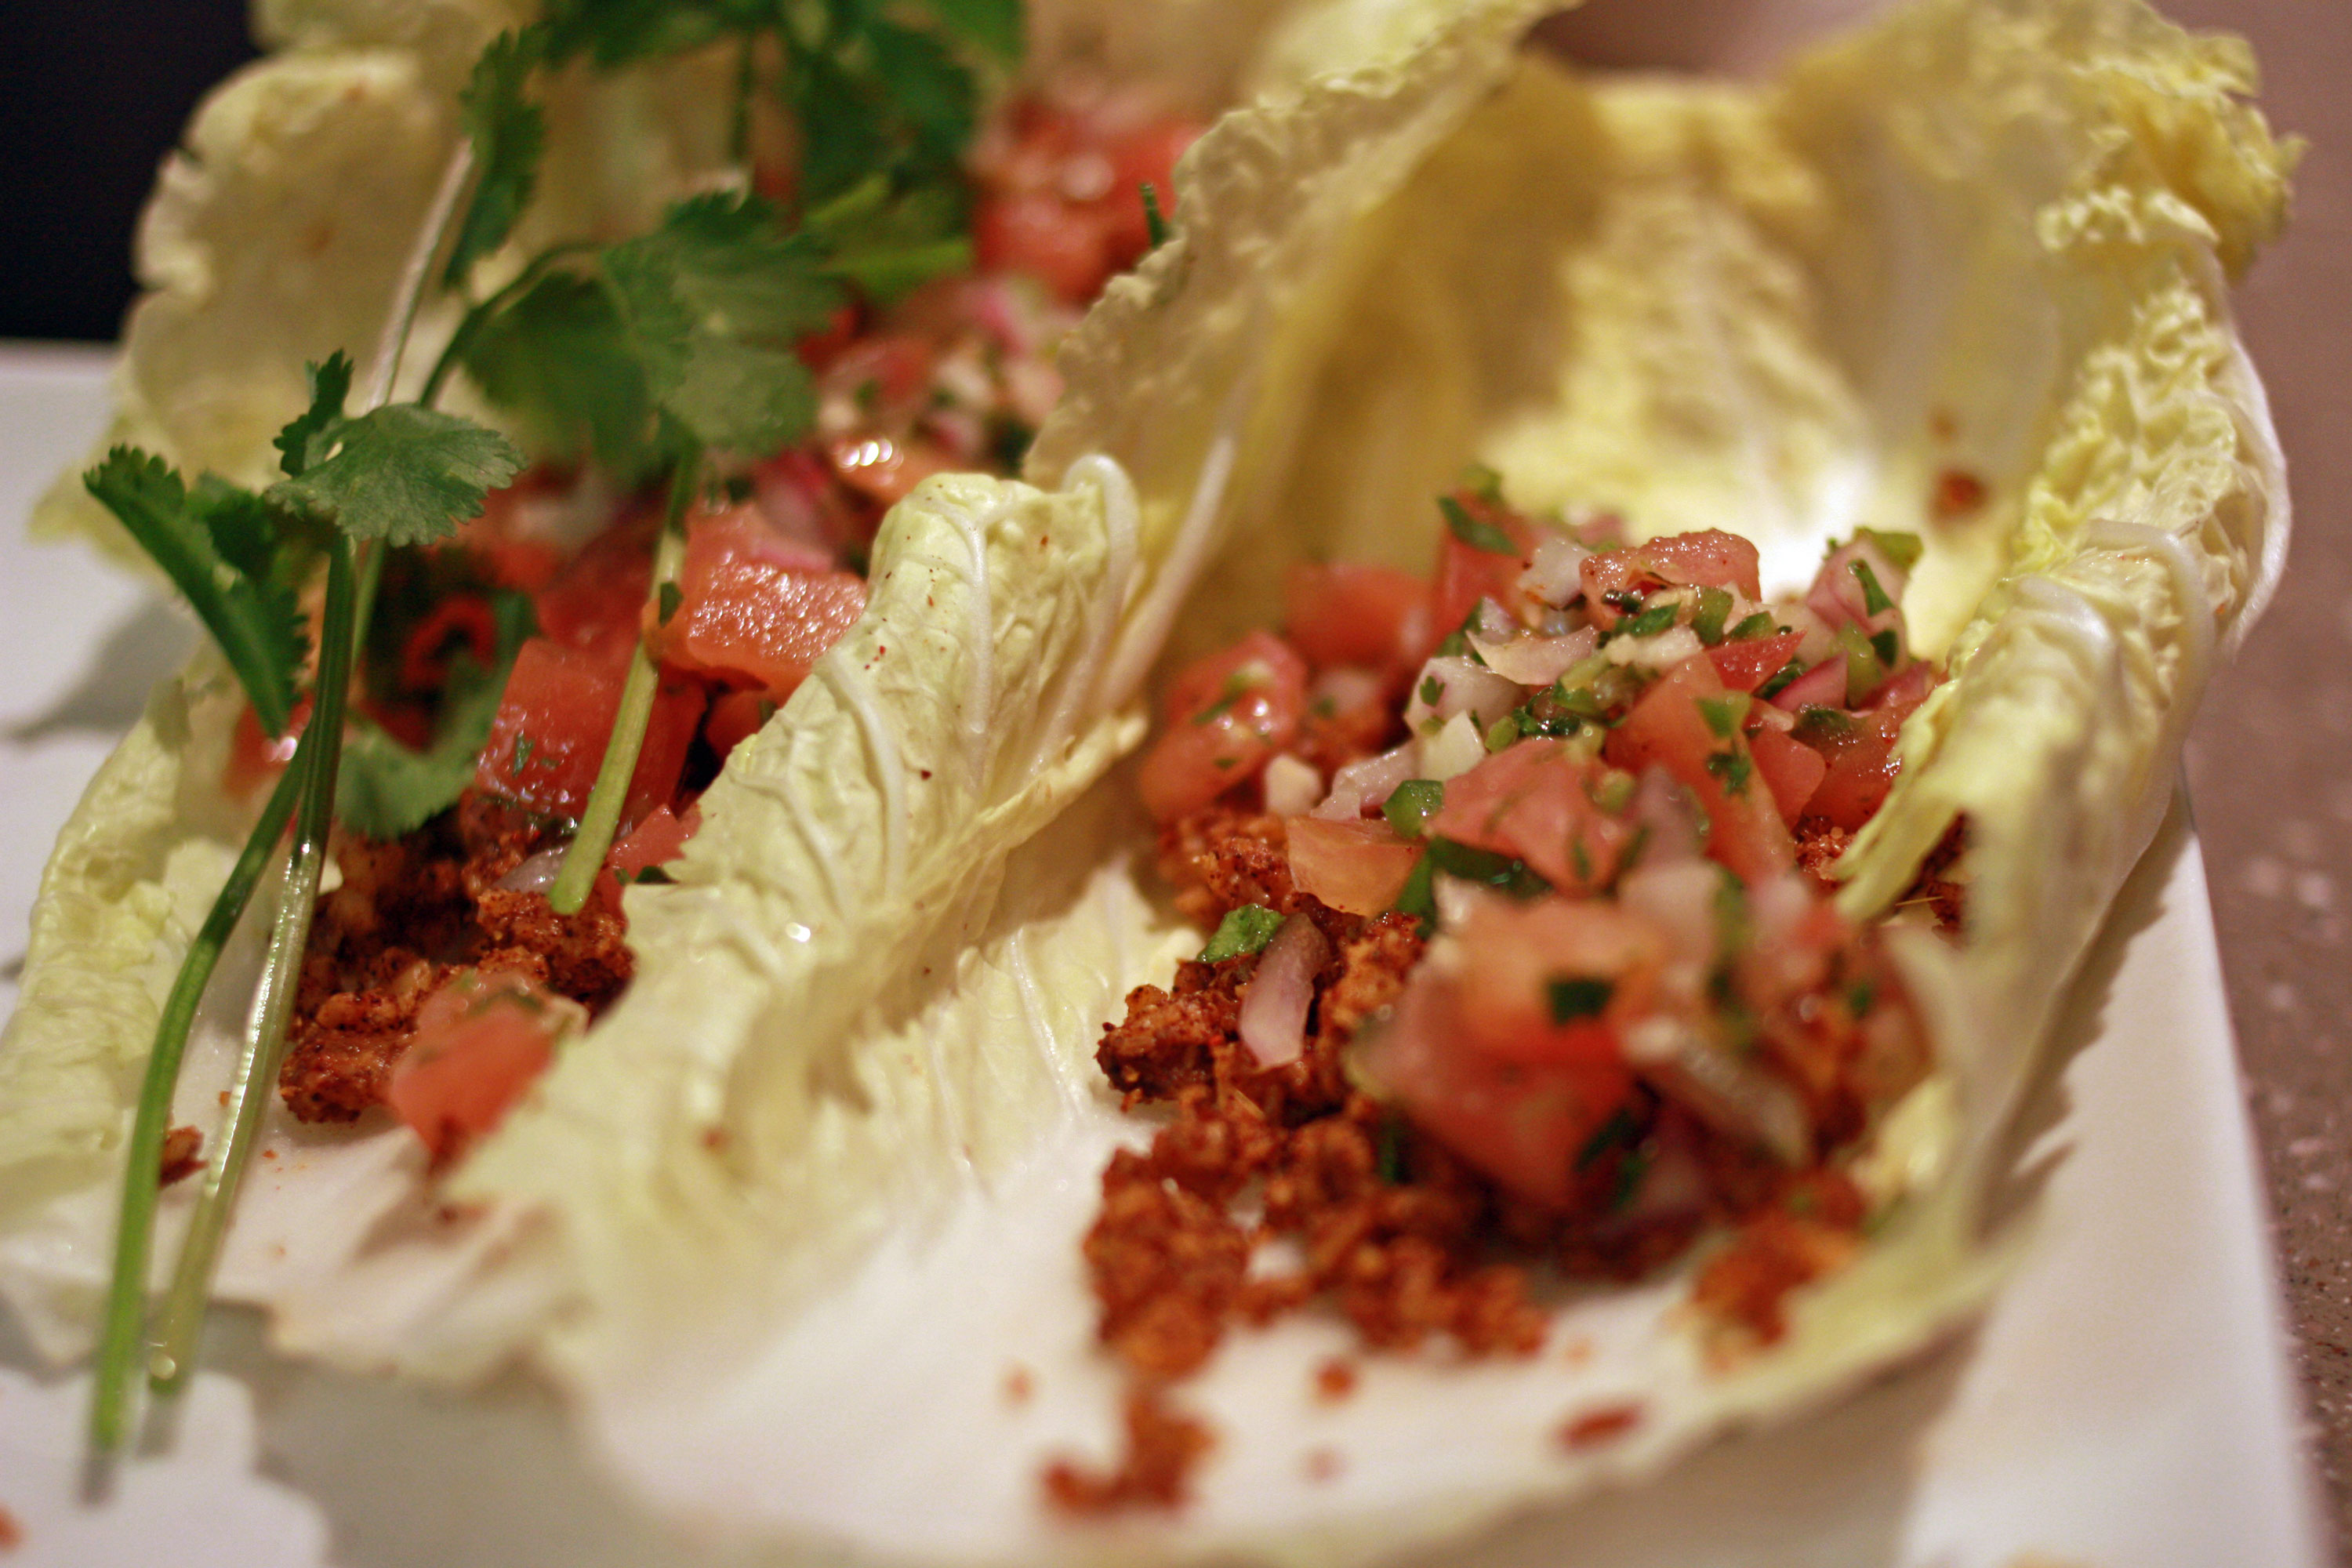 Raw Tacos With Walnuts On A Napa Cabbage Leaf